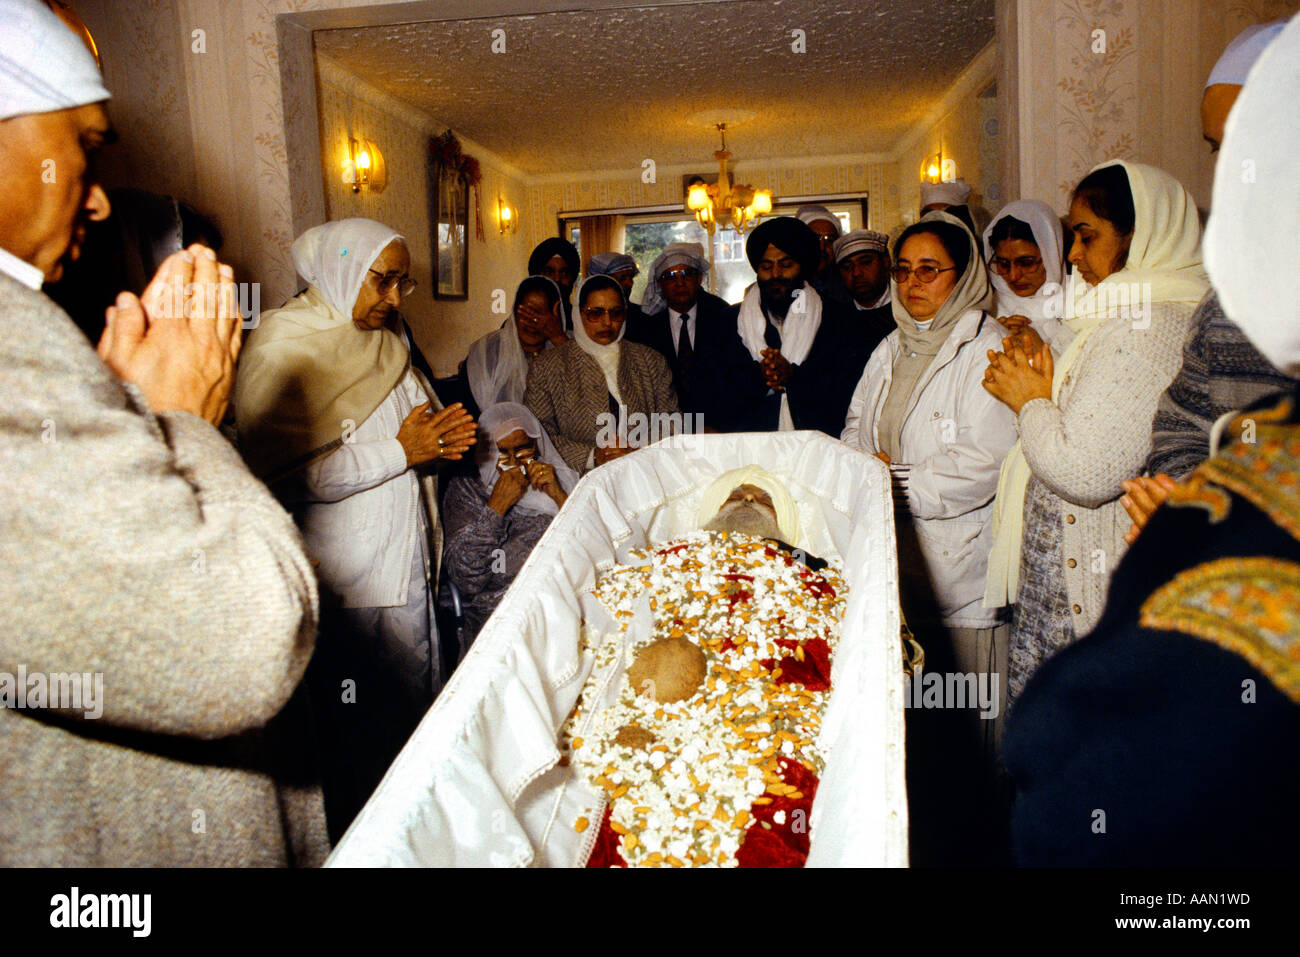 Sikh funeral stock photos sikh funeral stock images alamy sikh funeral women paying last respects at home stock image izmirmasajfo